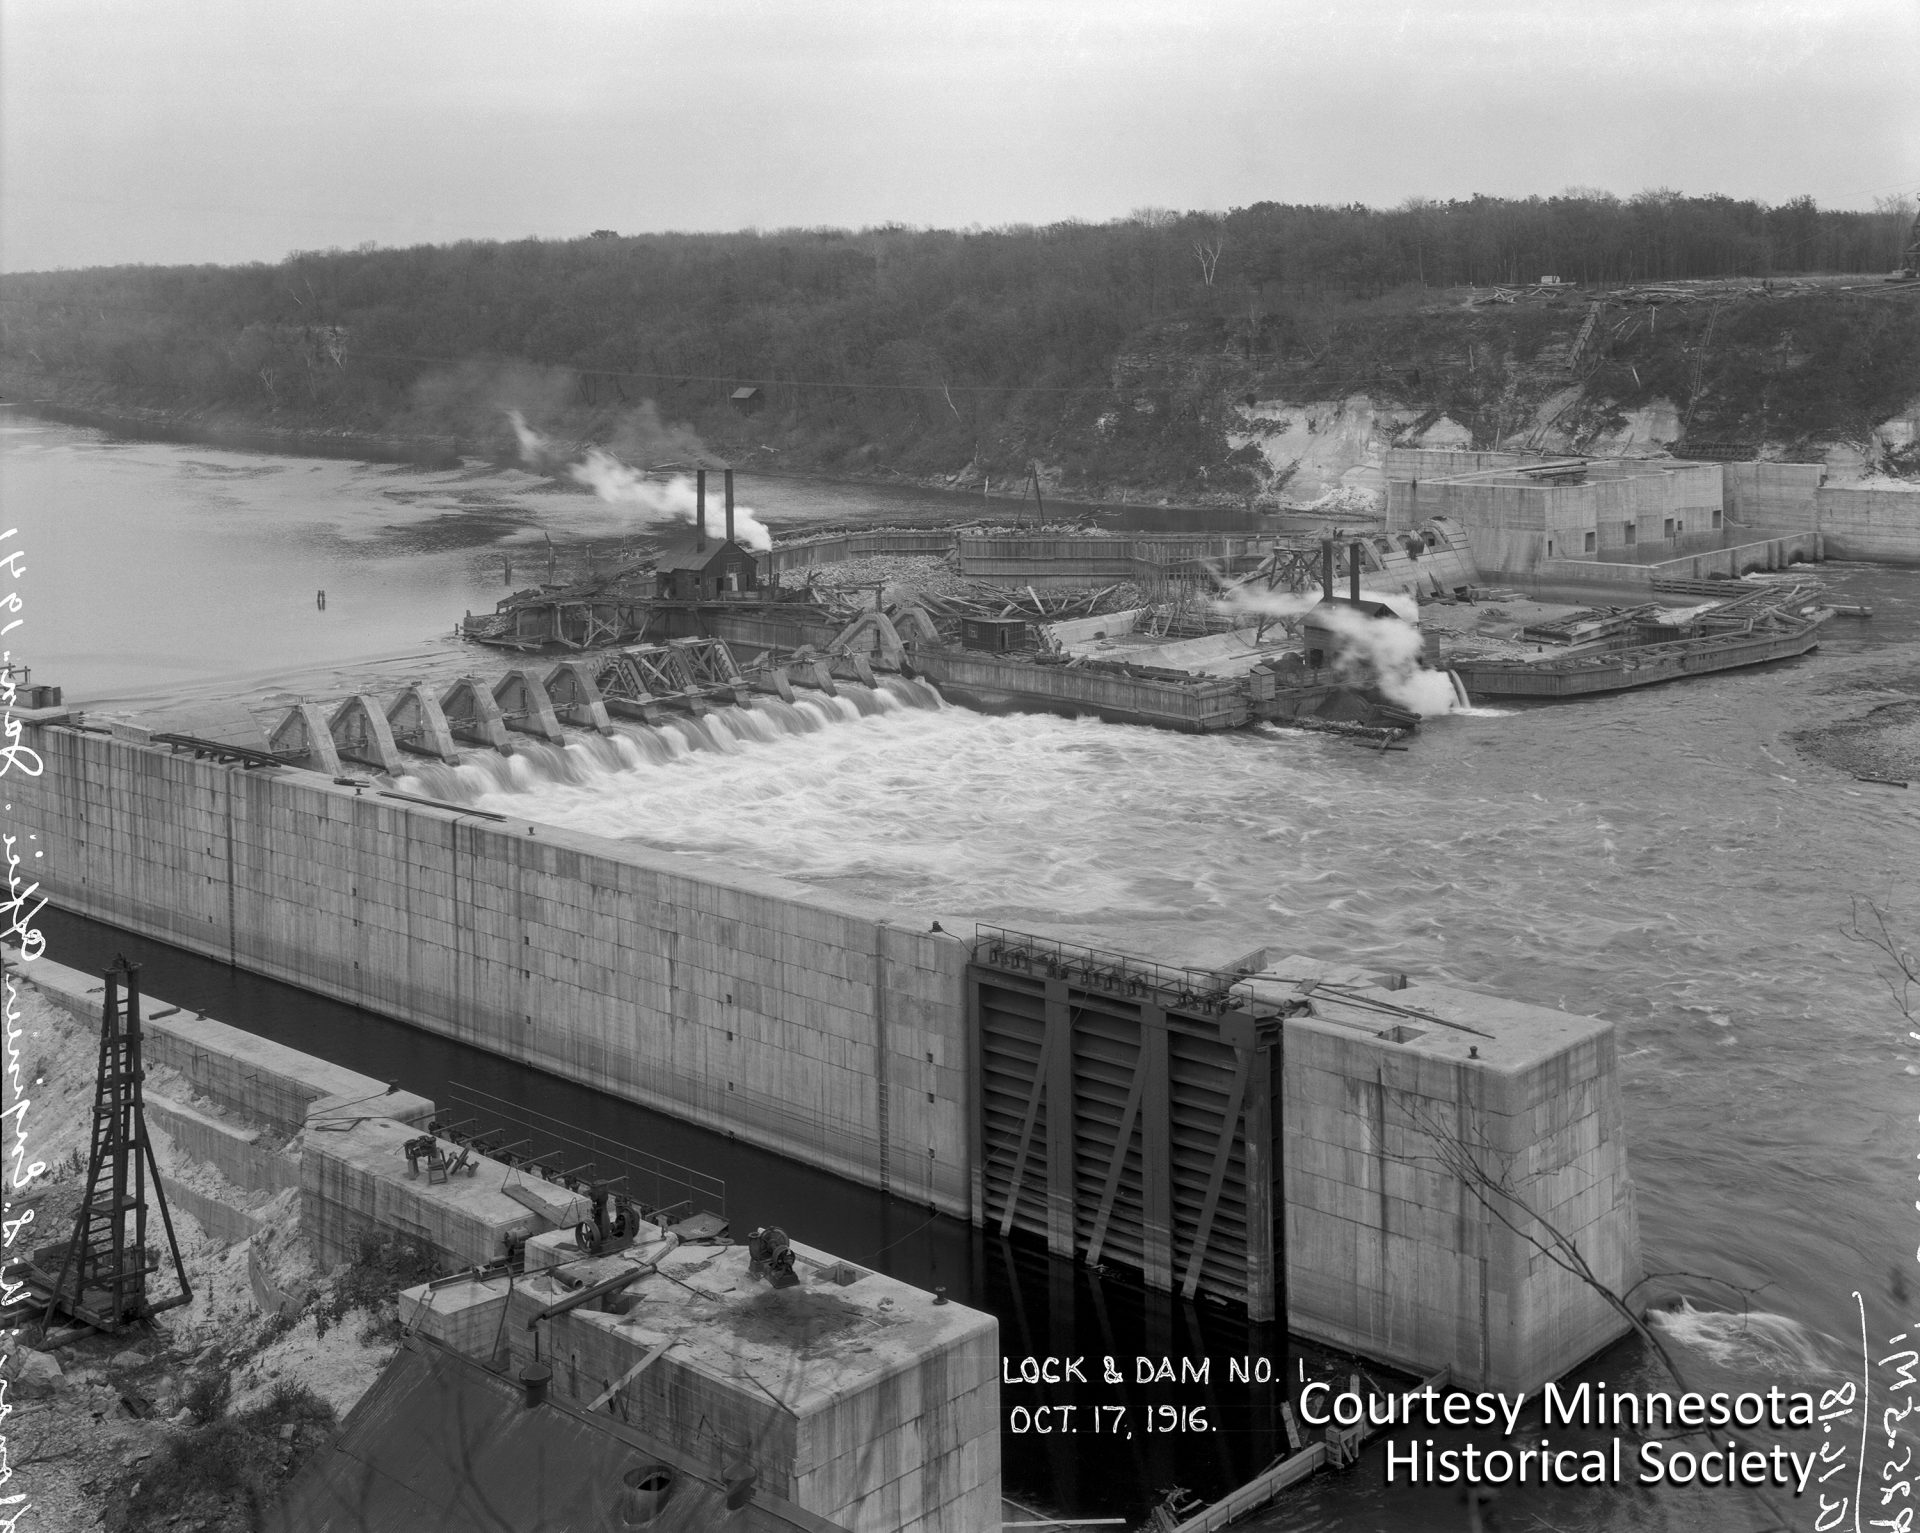 This 1916 photo, taken from the west side of the river, shows Lock & Dam No. 1 under construction. At the upper right are the original foundations built by the Army Corps of Engineers for a future hydroelectric plant. Those foundations would later be demolished to make way for Henry Ford's larger turbine generators. Courtesy Minnesota Historical Society